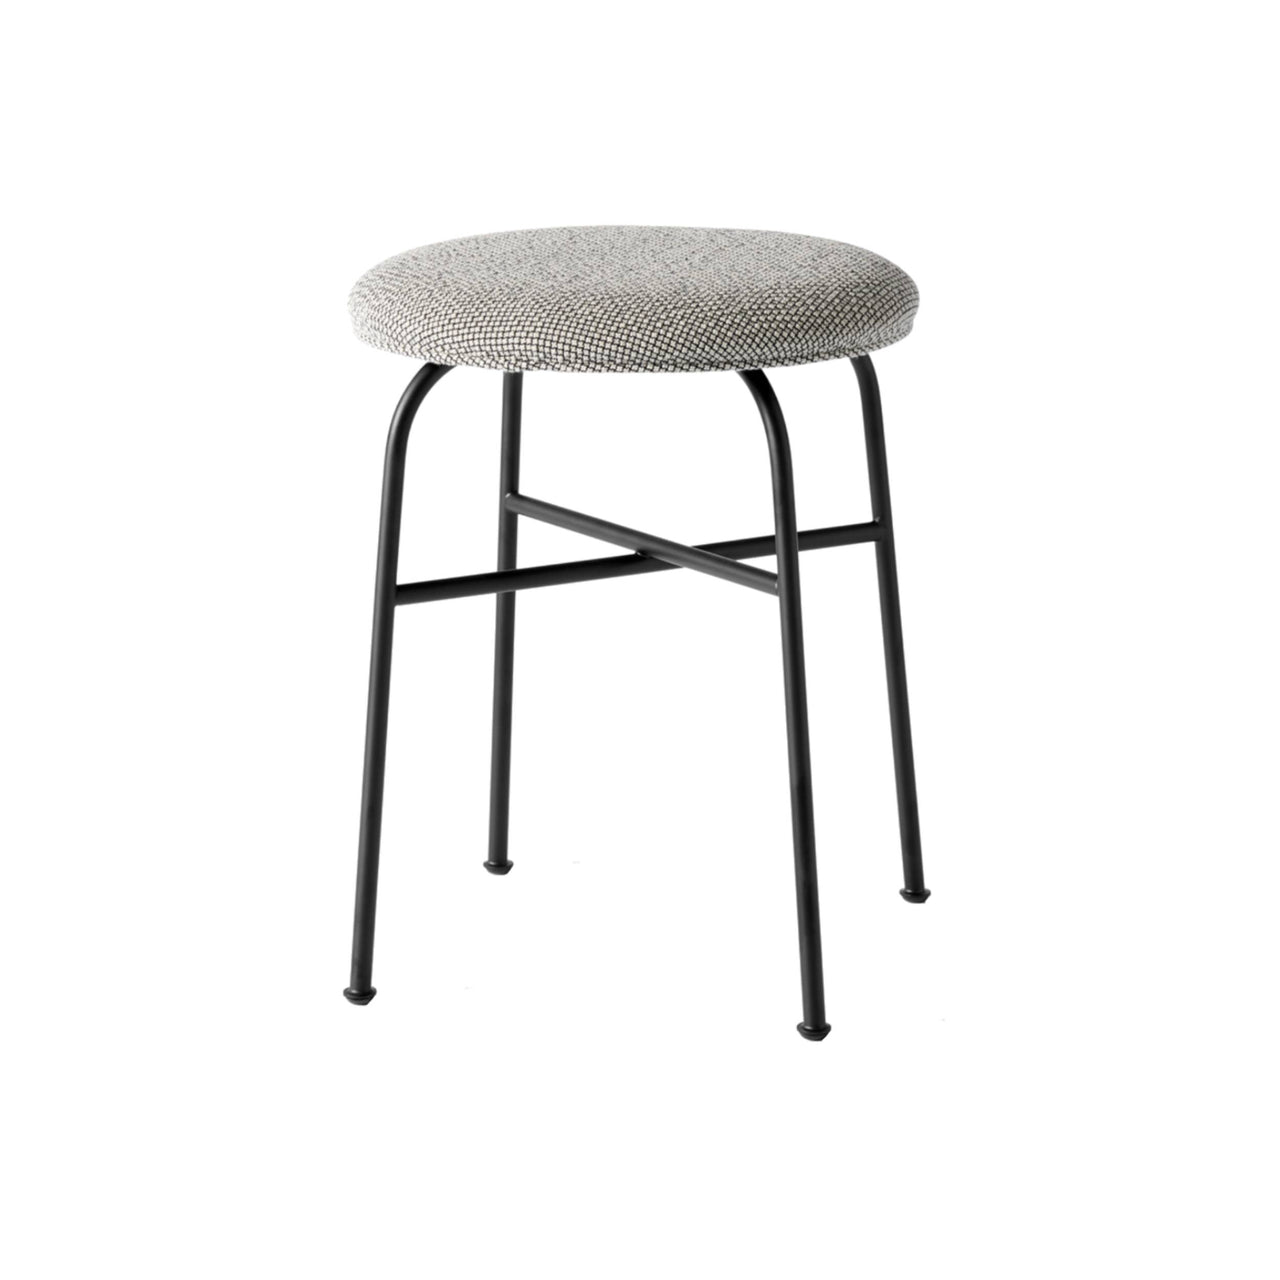 Afteroom Stool: Upholstered